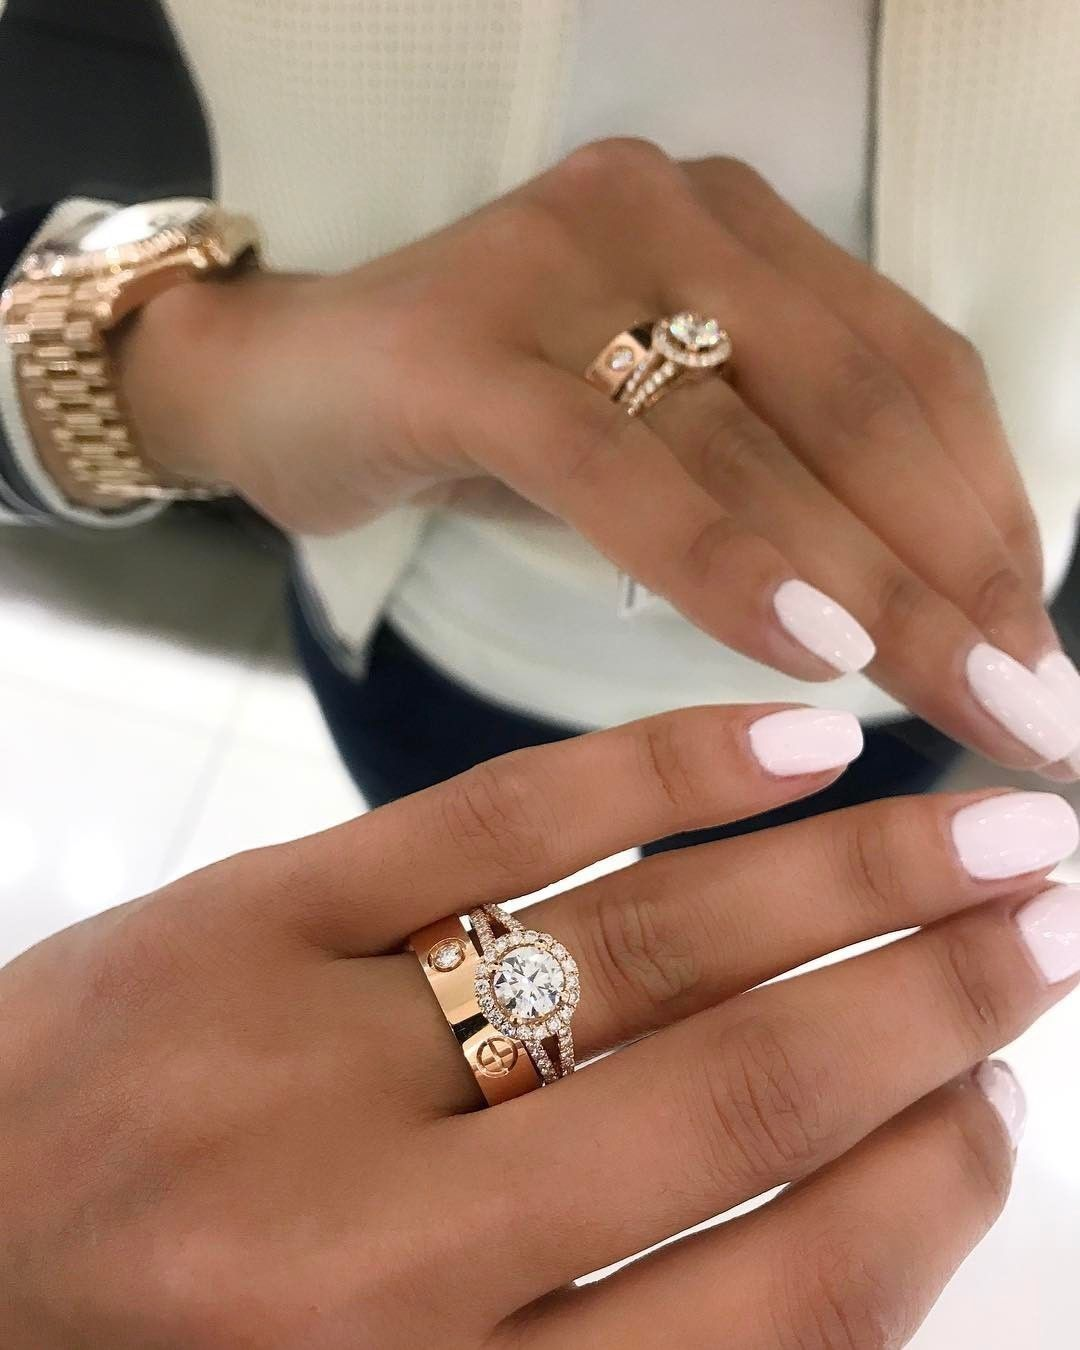 6 244 Likes 42 Comments Engagement Rings Gallery Thecaratclub On Instagram Swoonin Cartier Love Ring Cartier Wedding Rings Yellow Gold Engagement Rings